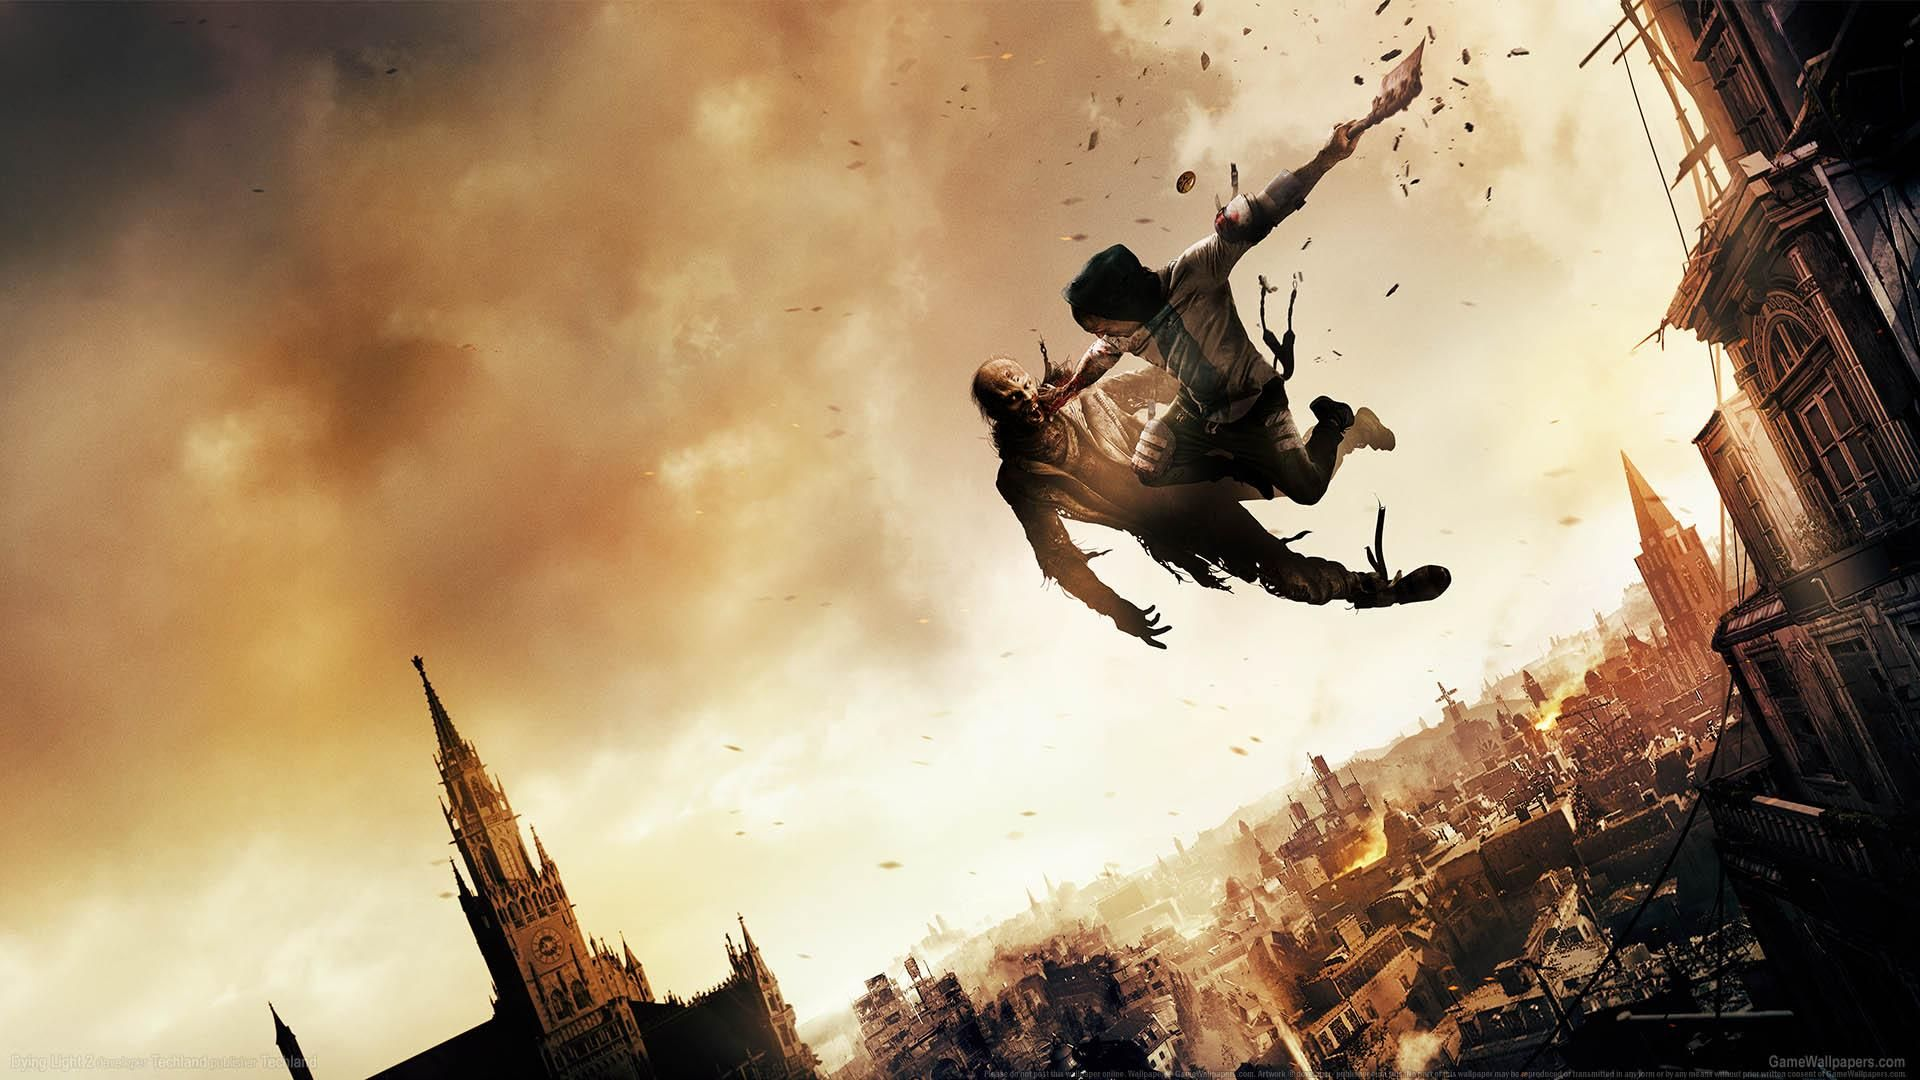 /dying-light-2-release-date-gameplay-and-more-bt1a35bq feature image